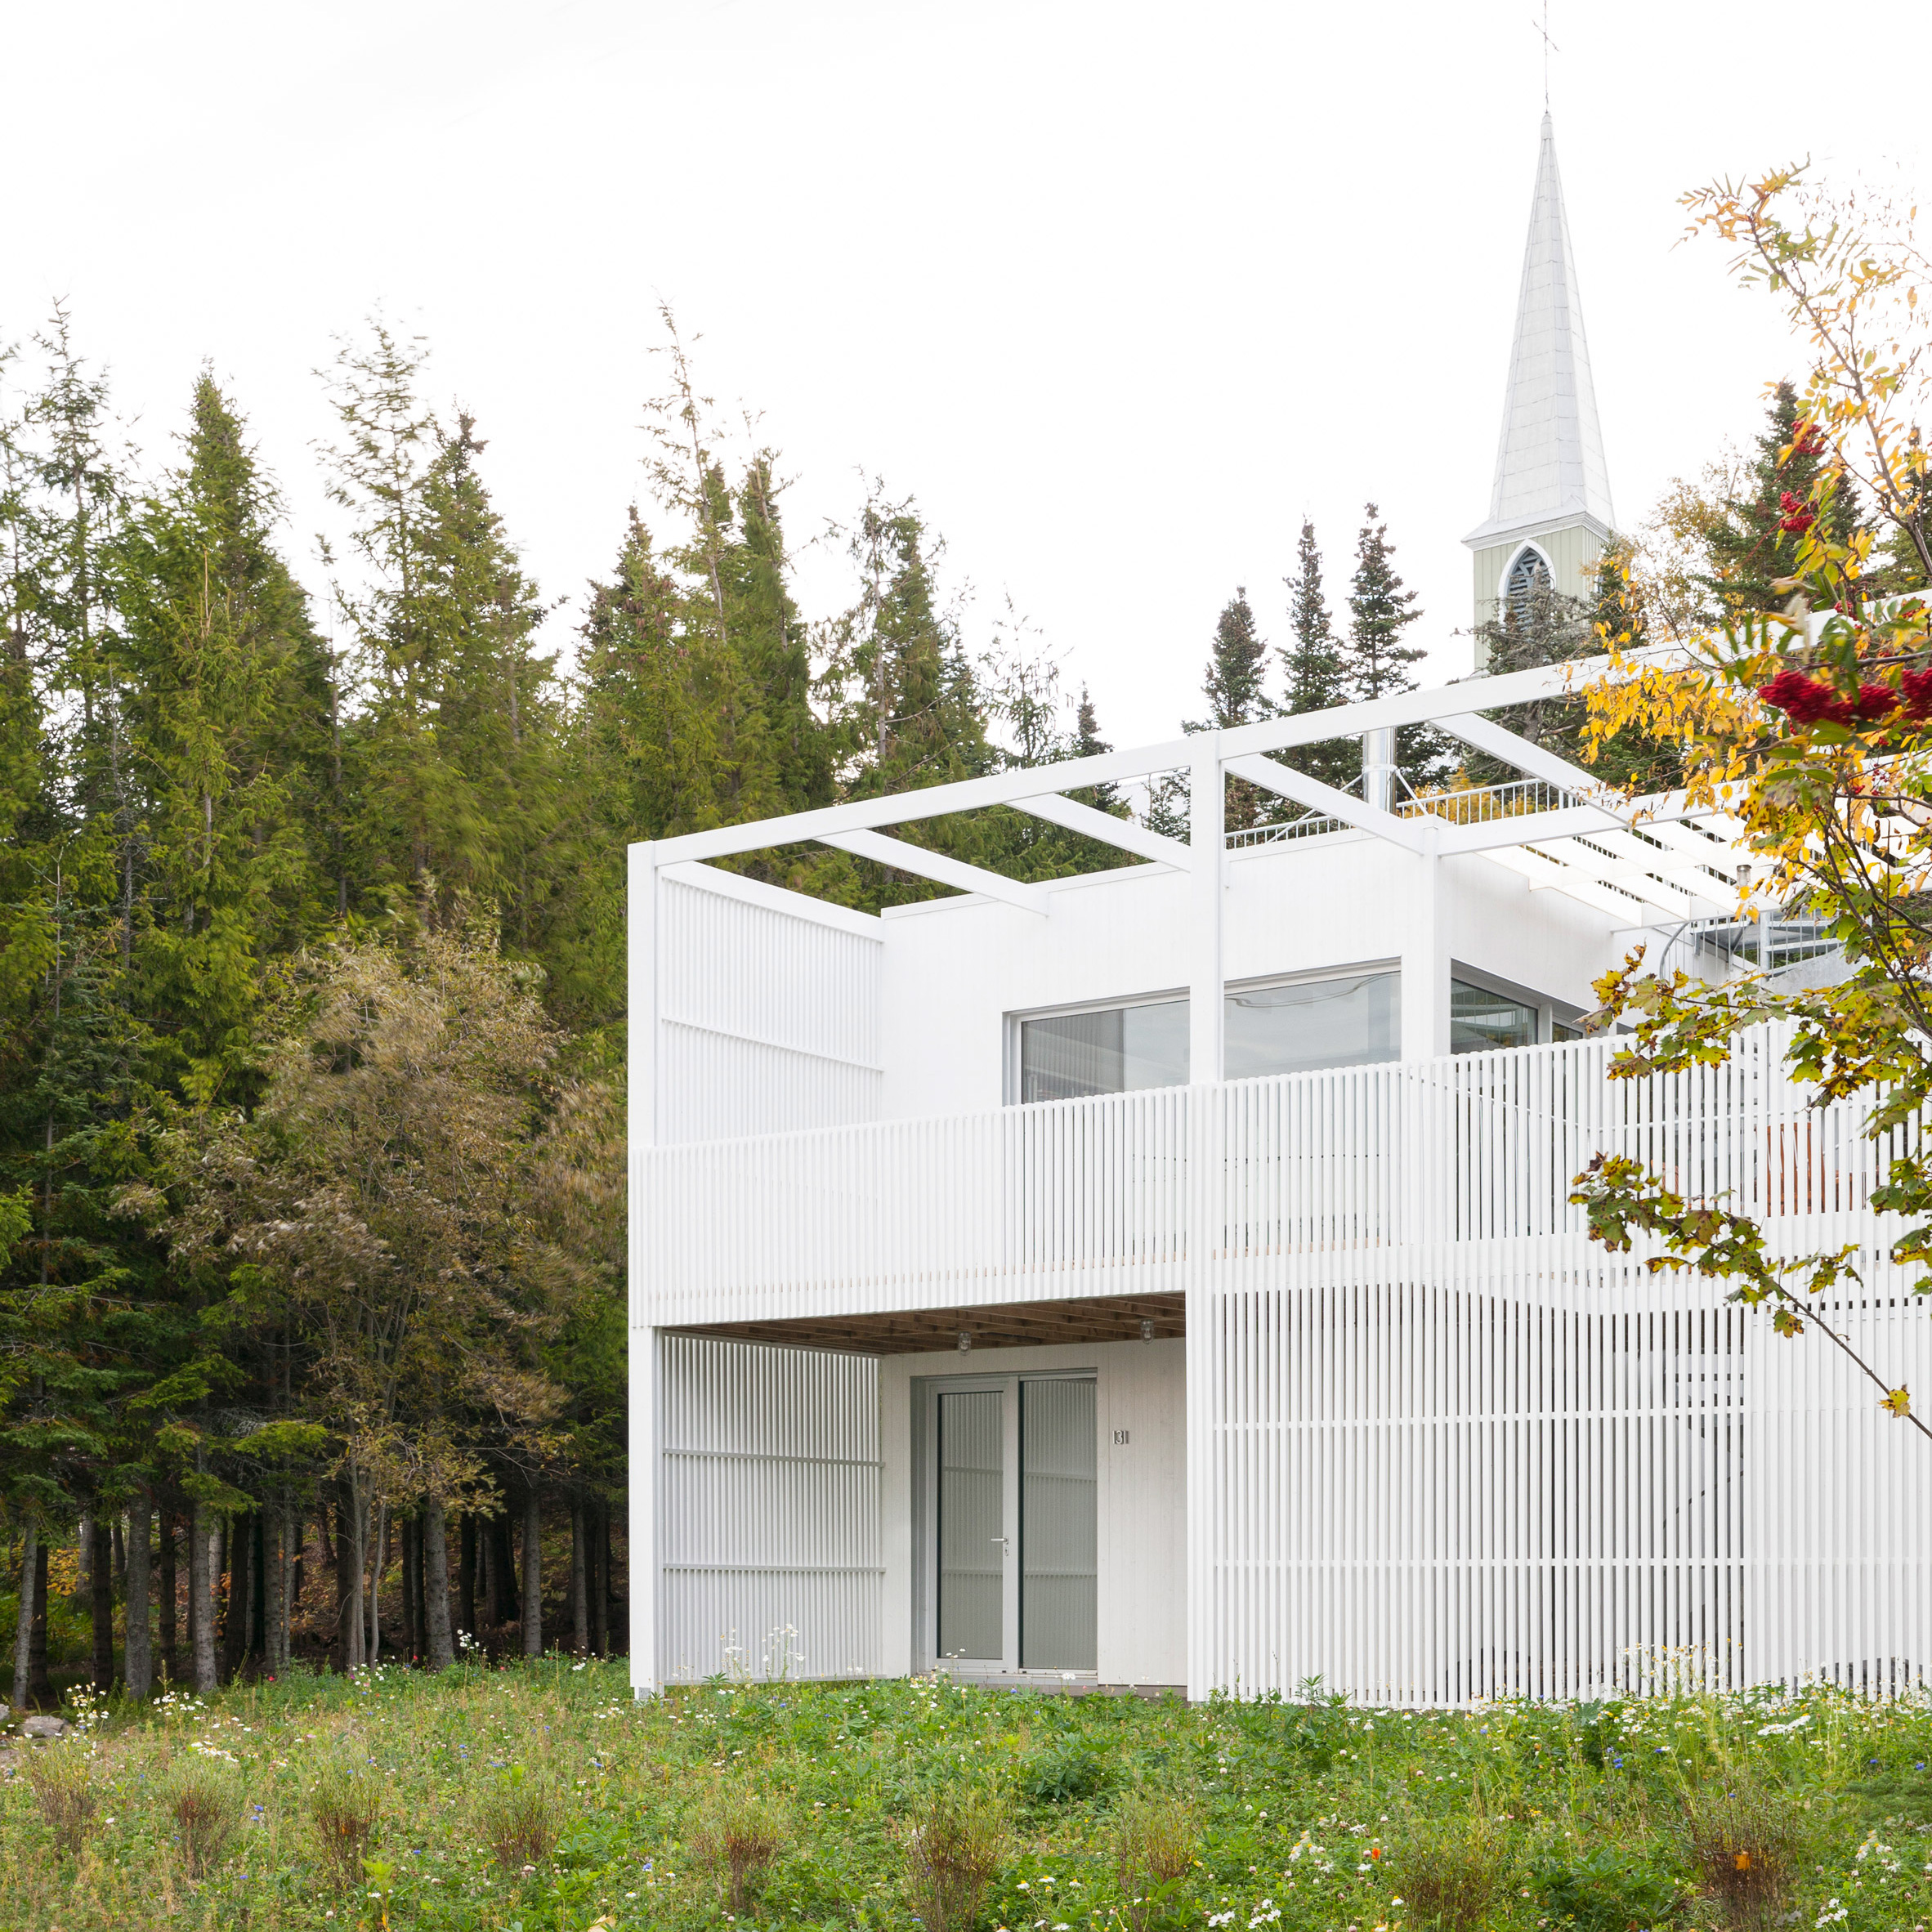 House design and architecture in Canada | Dezeen